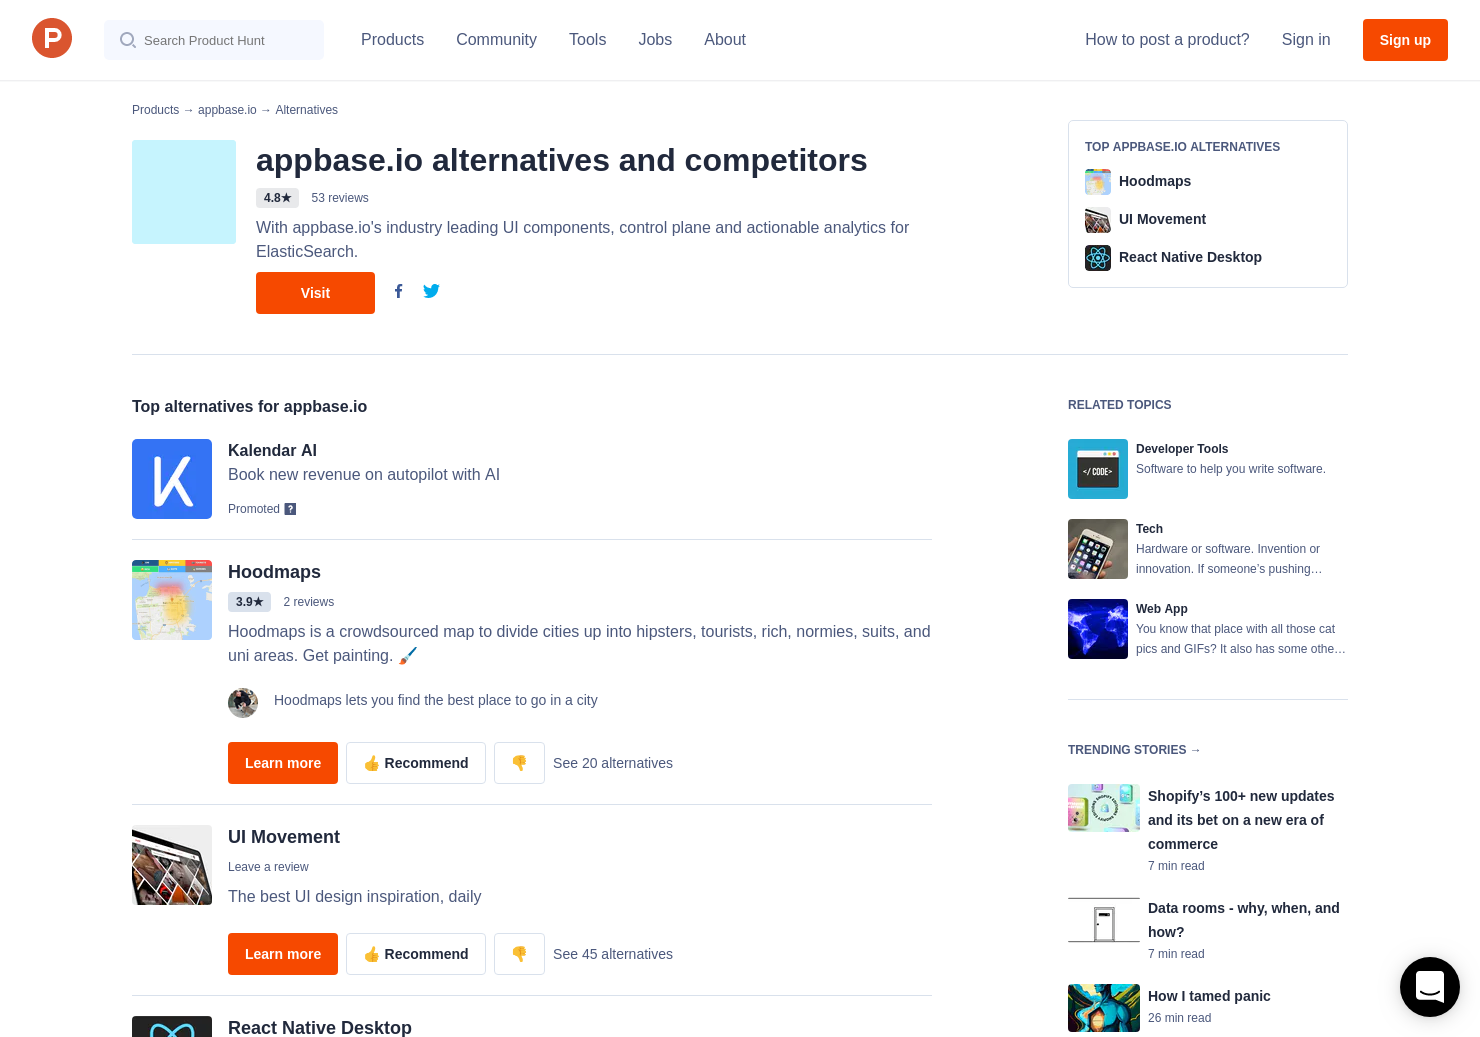 13 Alternatives to ReactiveSearch Native for Android, iPhone